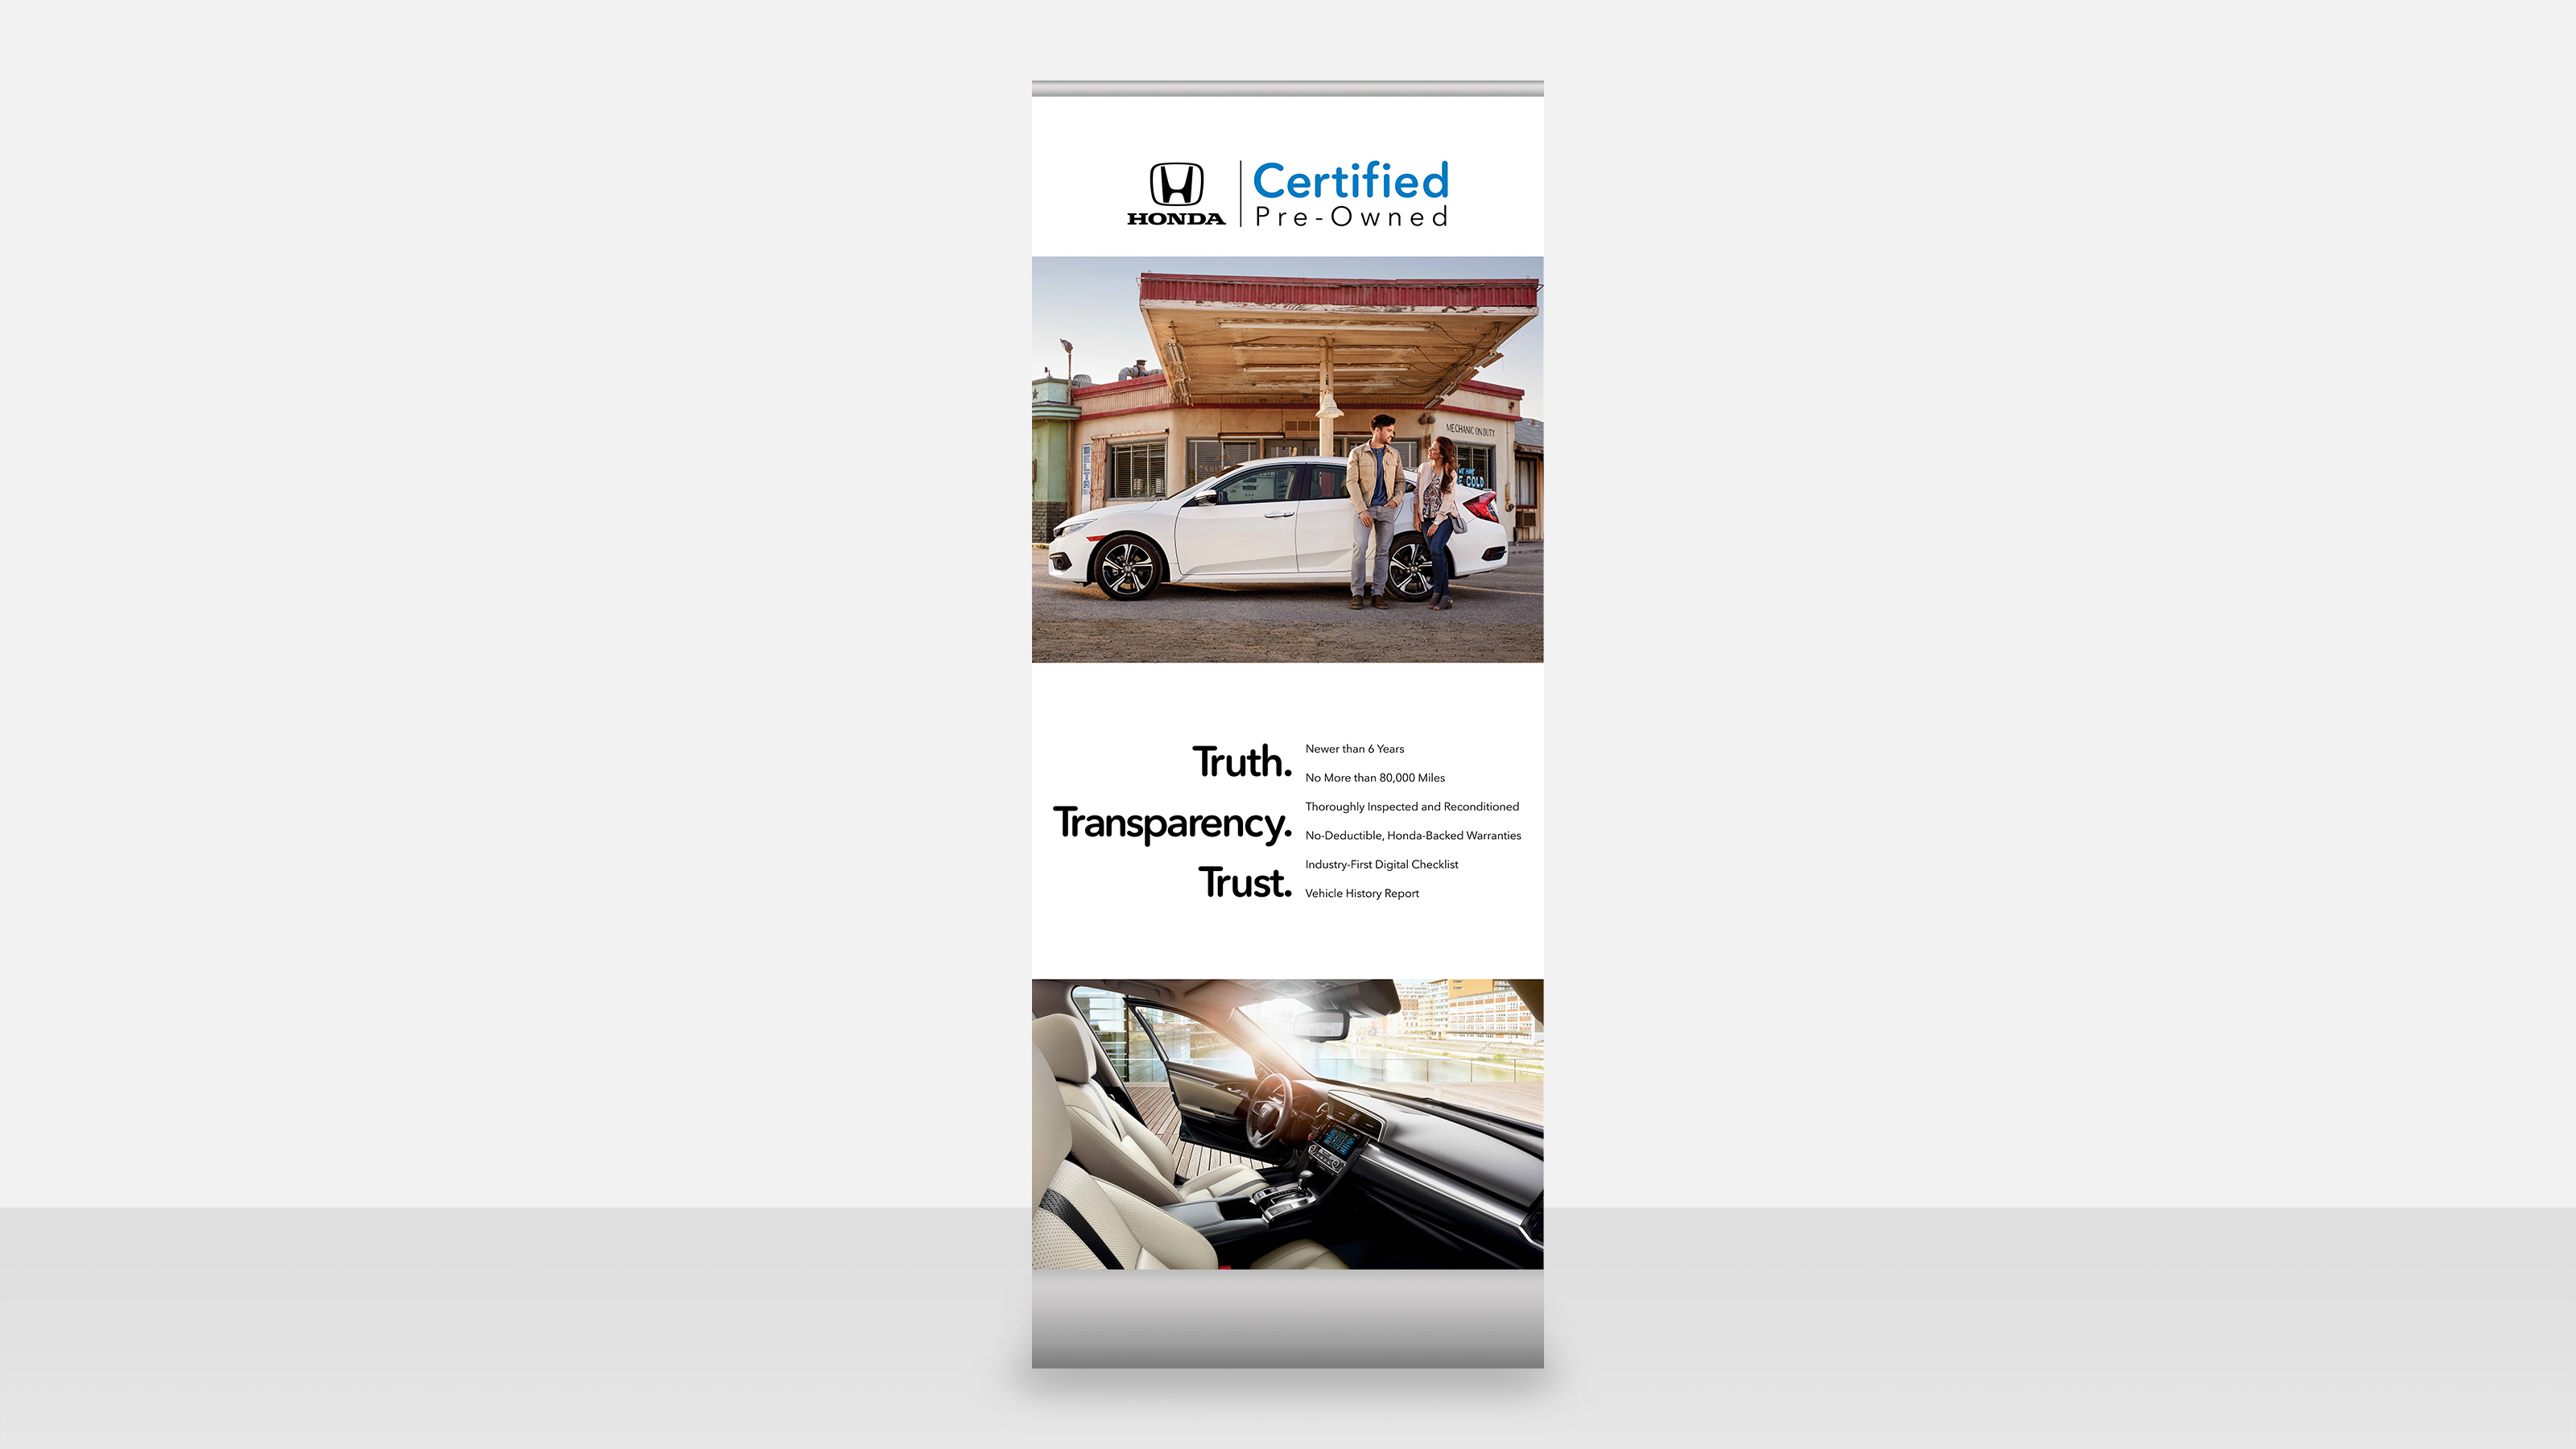 honda motors pre-owned point of purchase in-store banner